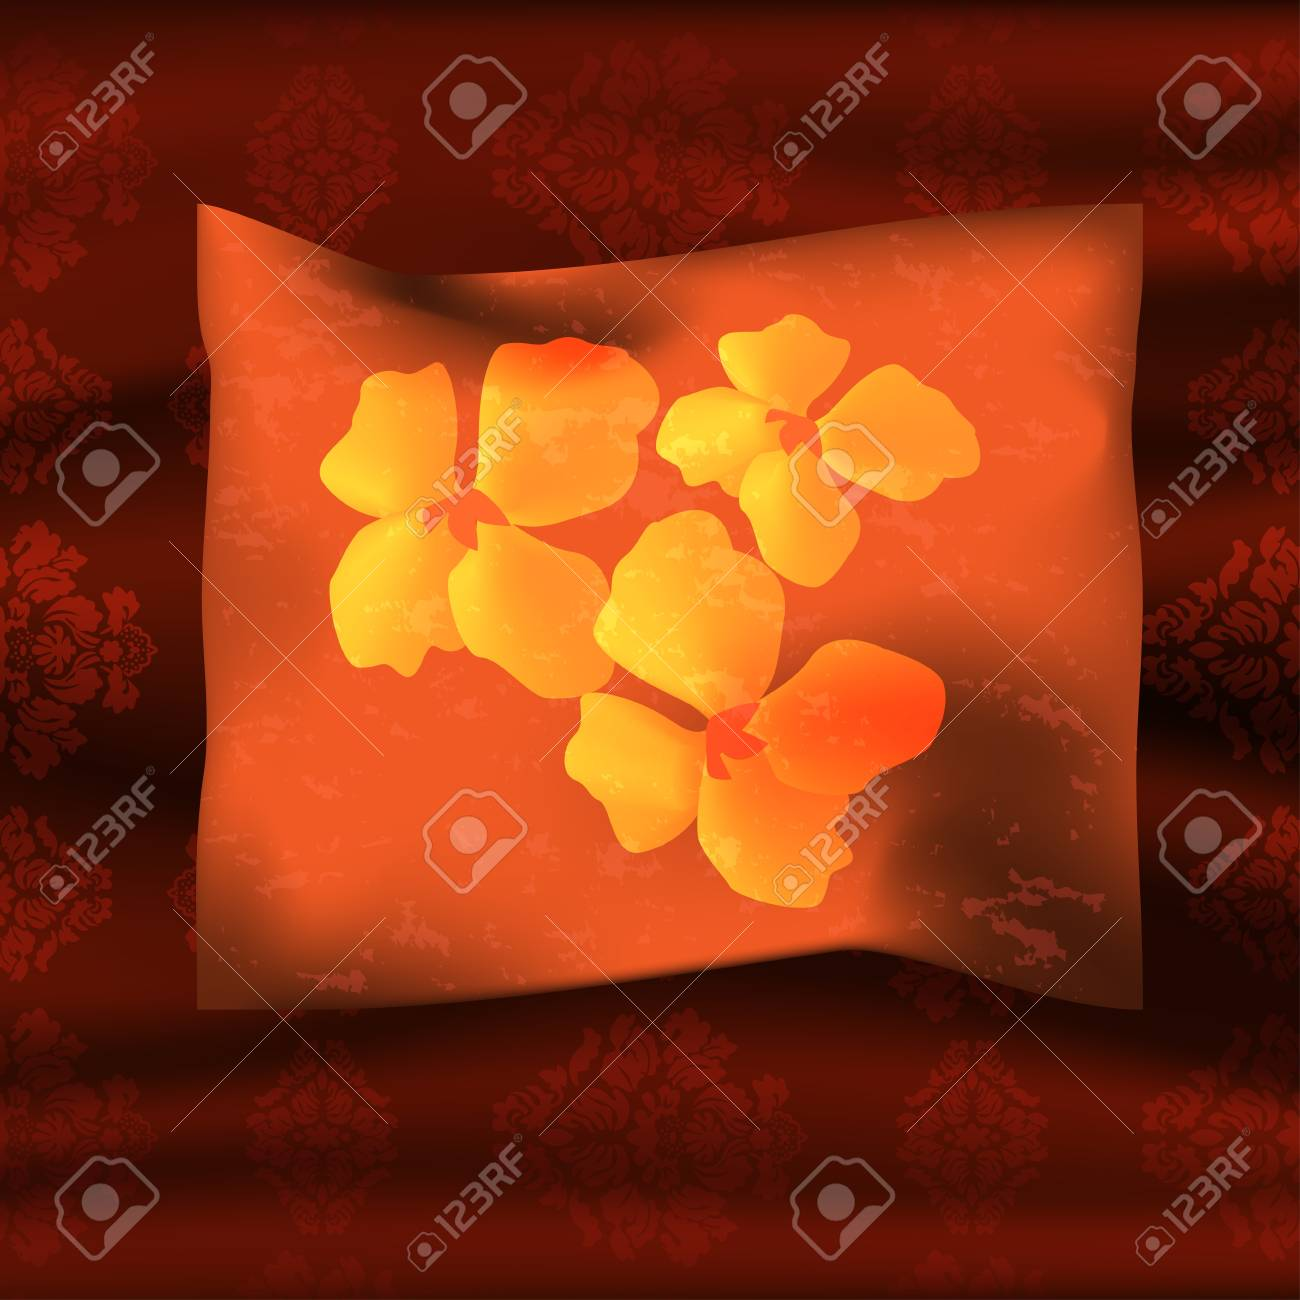 Graphic illustration of a pillow over coverlet Stock Vector - 18592828